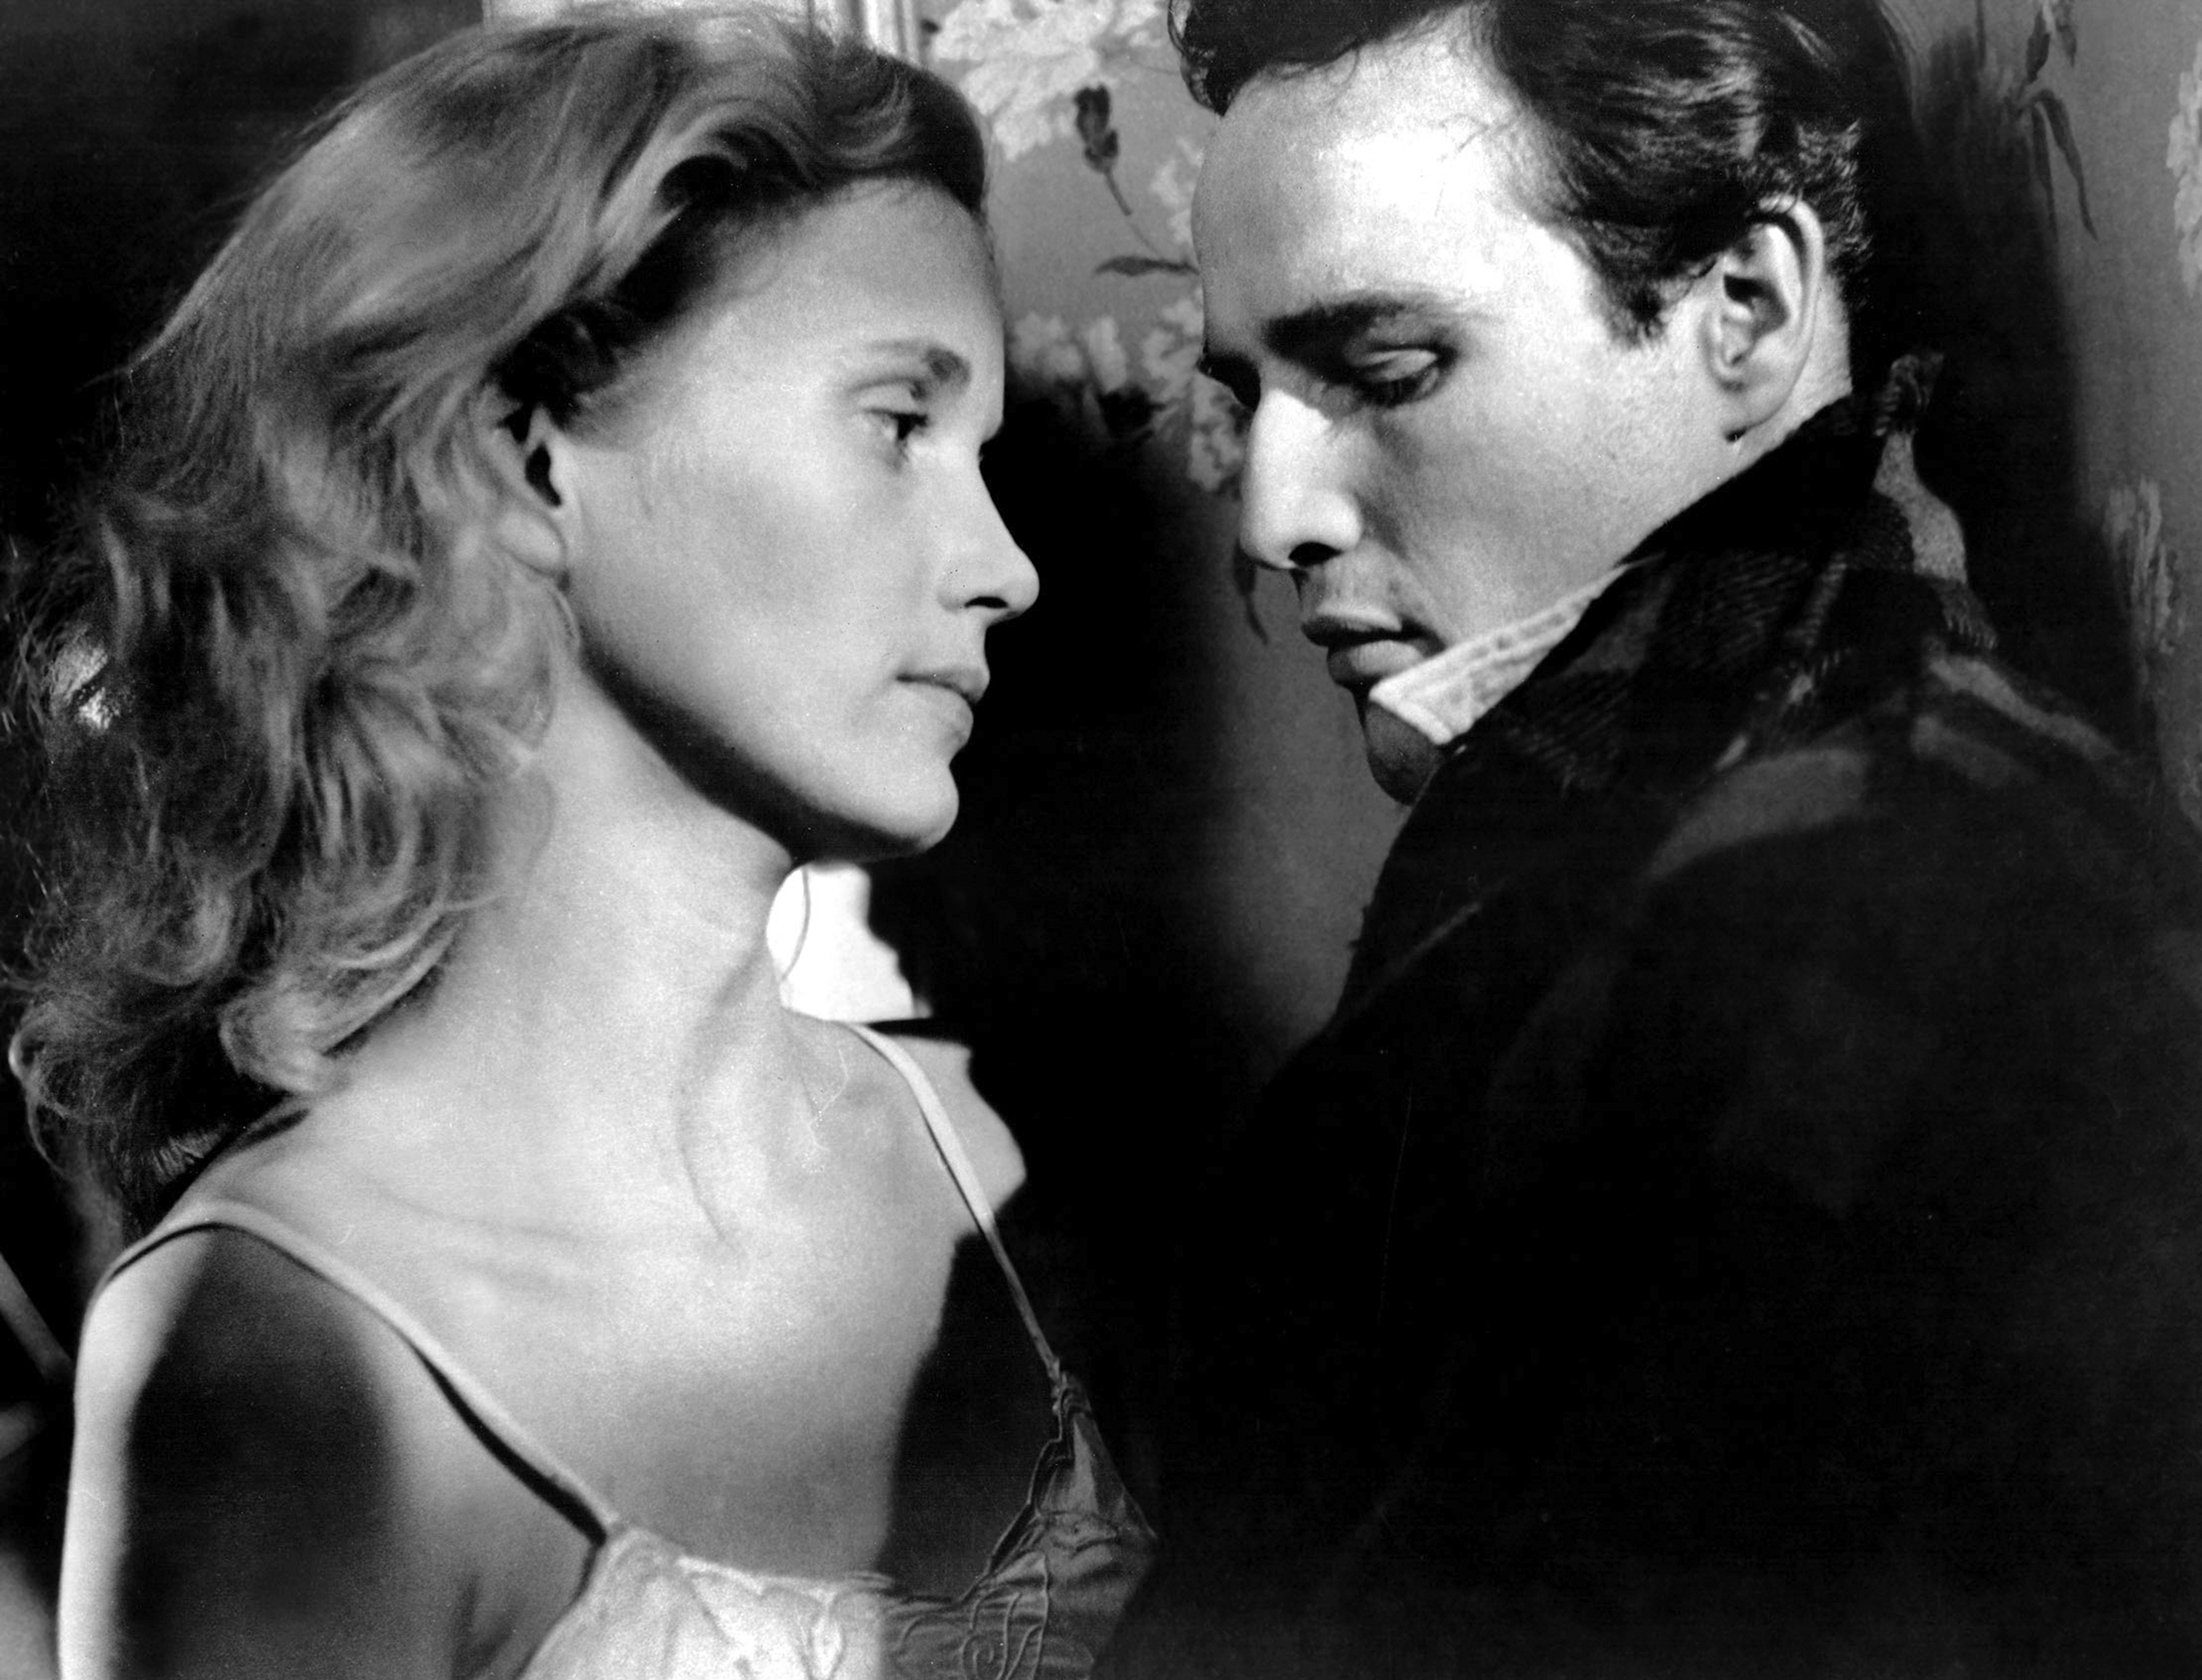 American actors Eva Marie Saint and Marlon Brando on the set of Waterfront, directed by Elia Kazan.